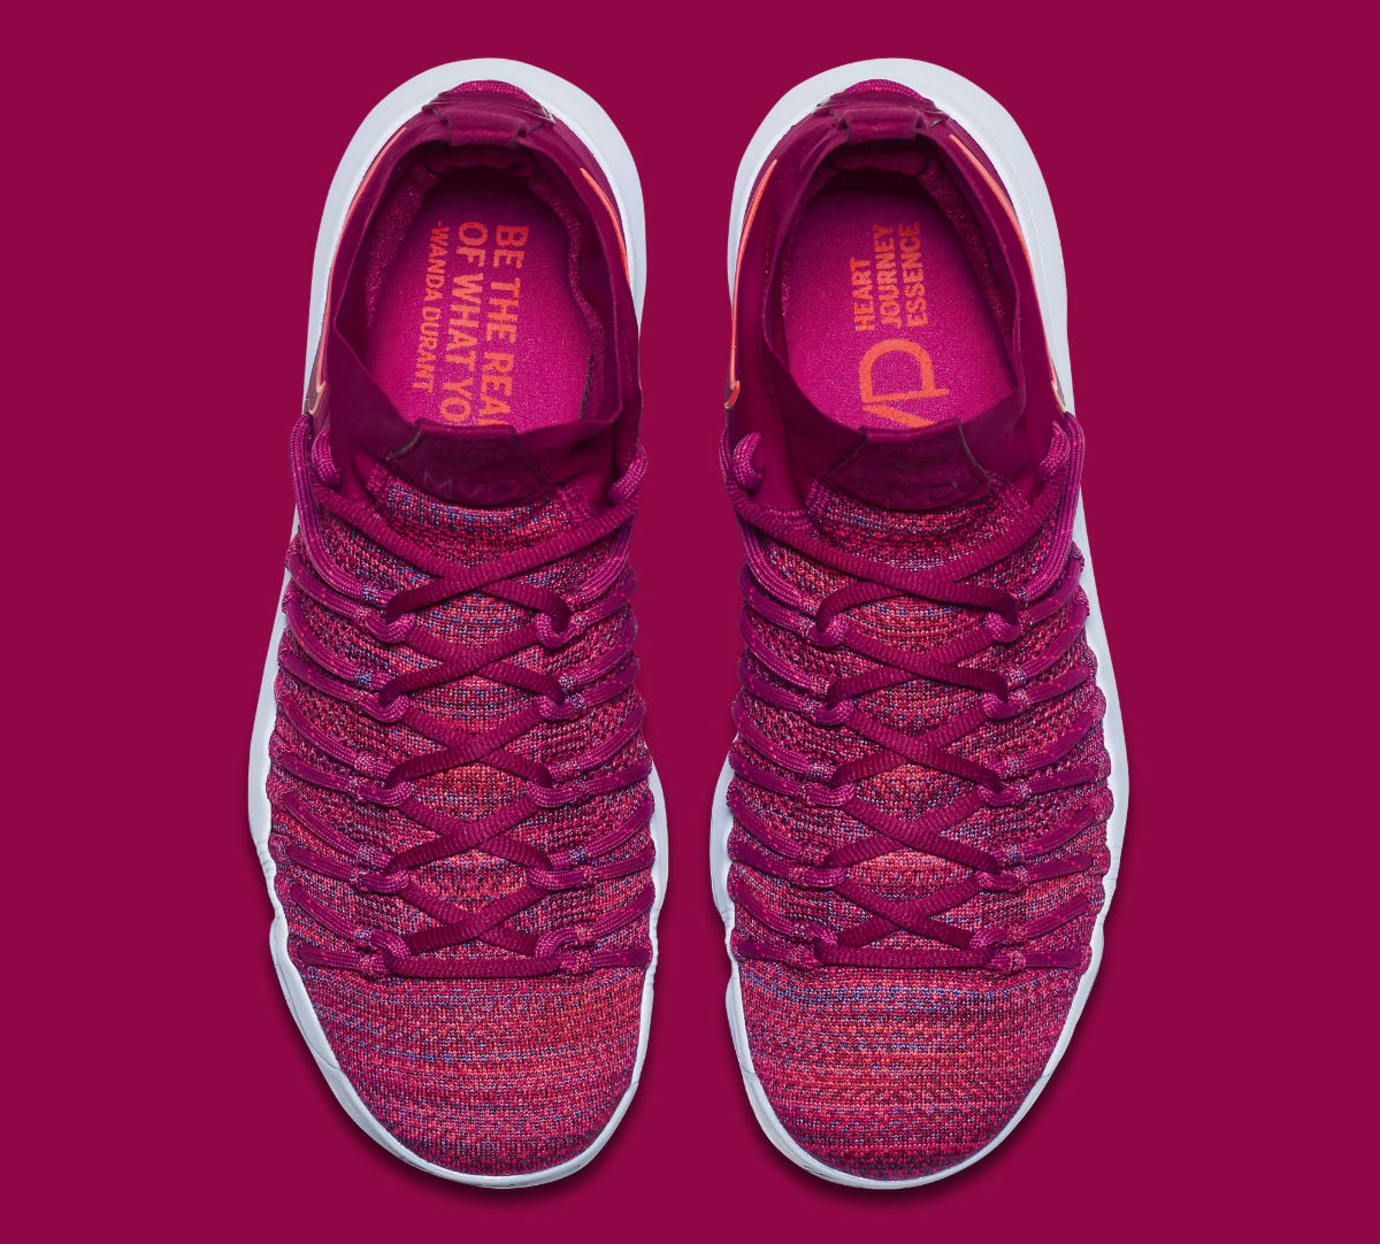 free shipping ab504 0cd2f Nike KD 9 Elite Racer Pink Release Date 878639-666 | Sole ...